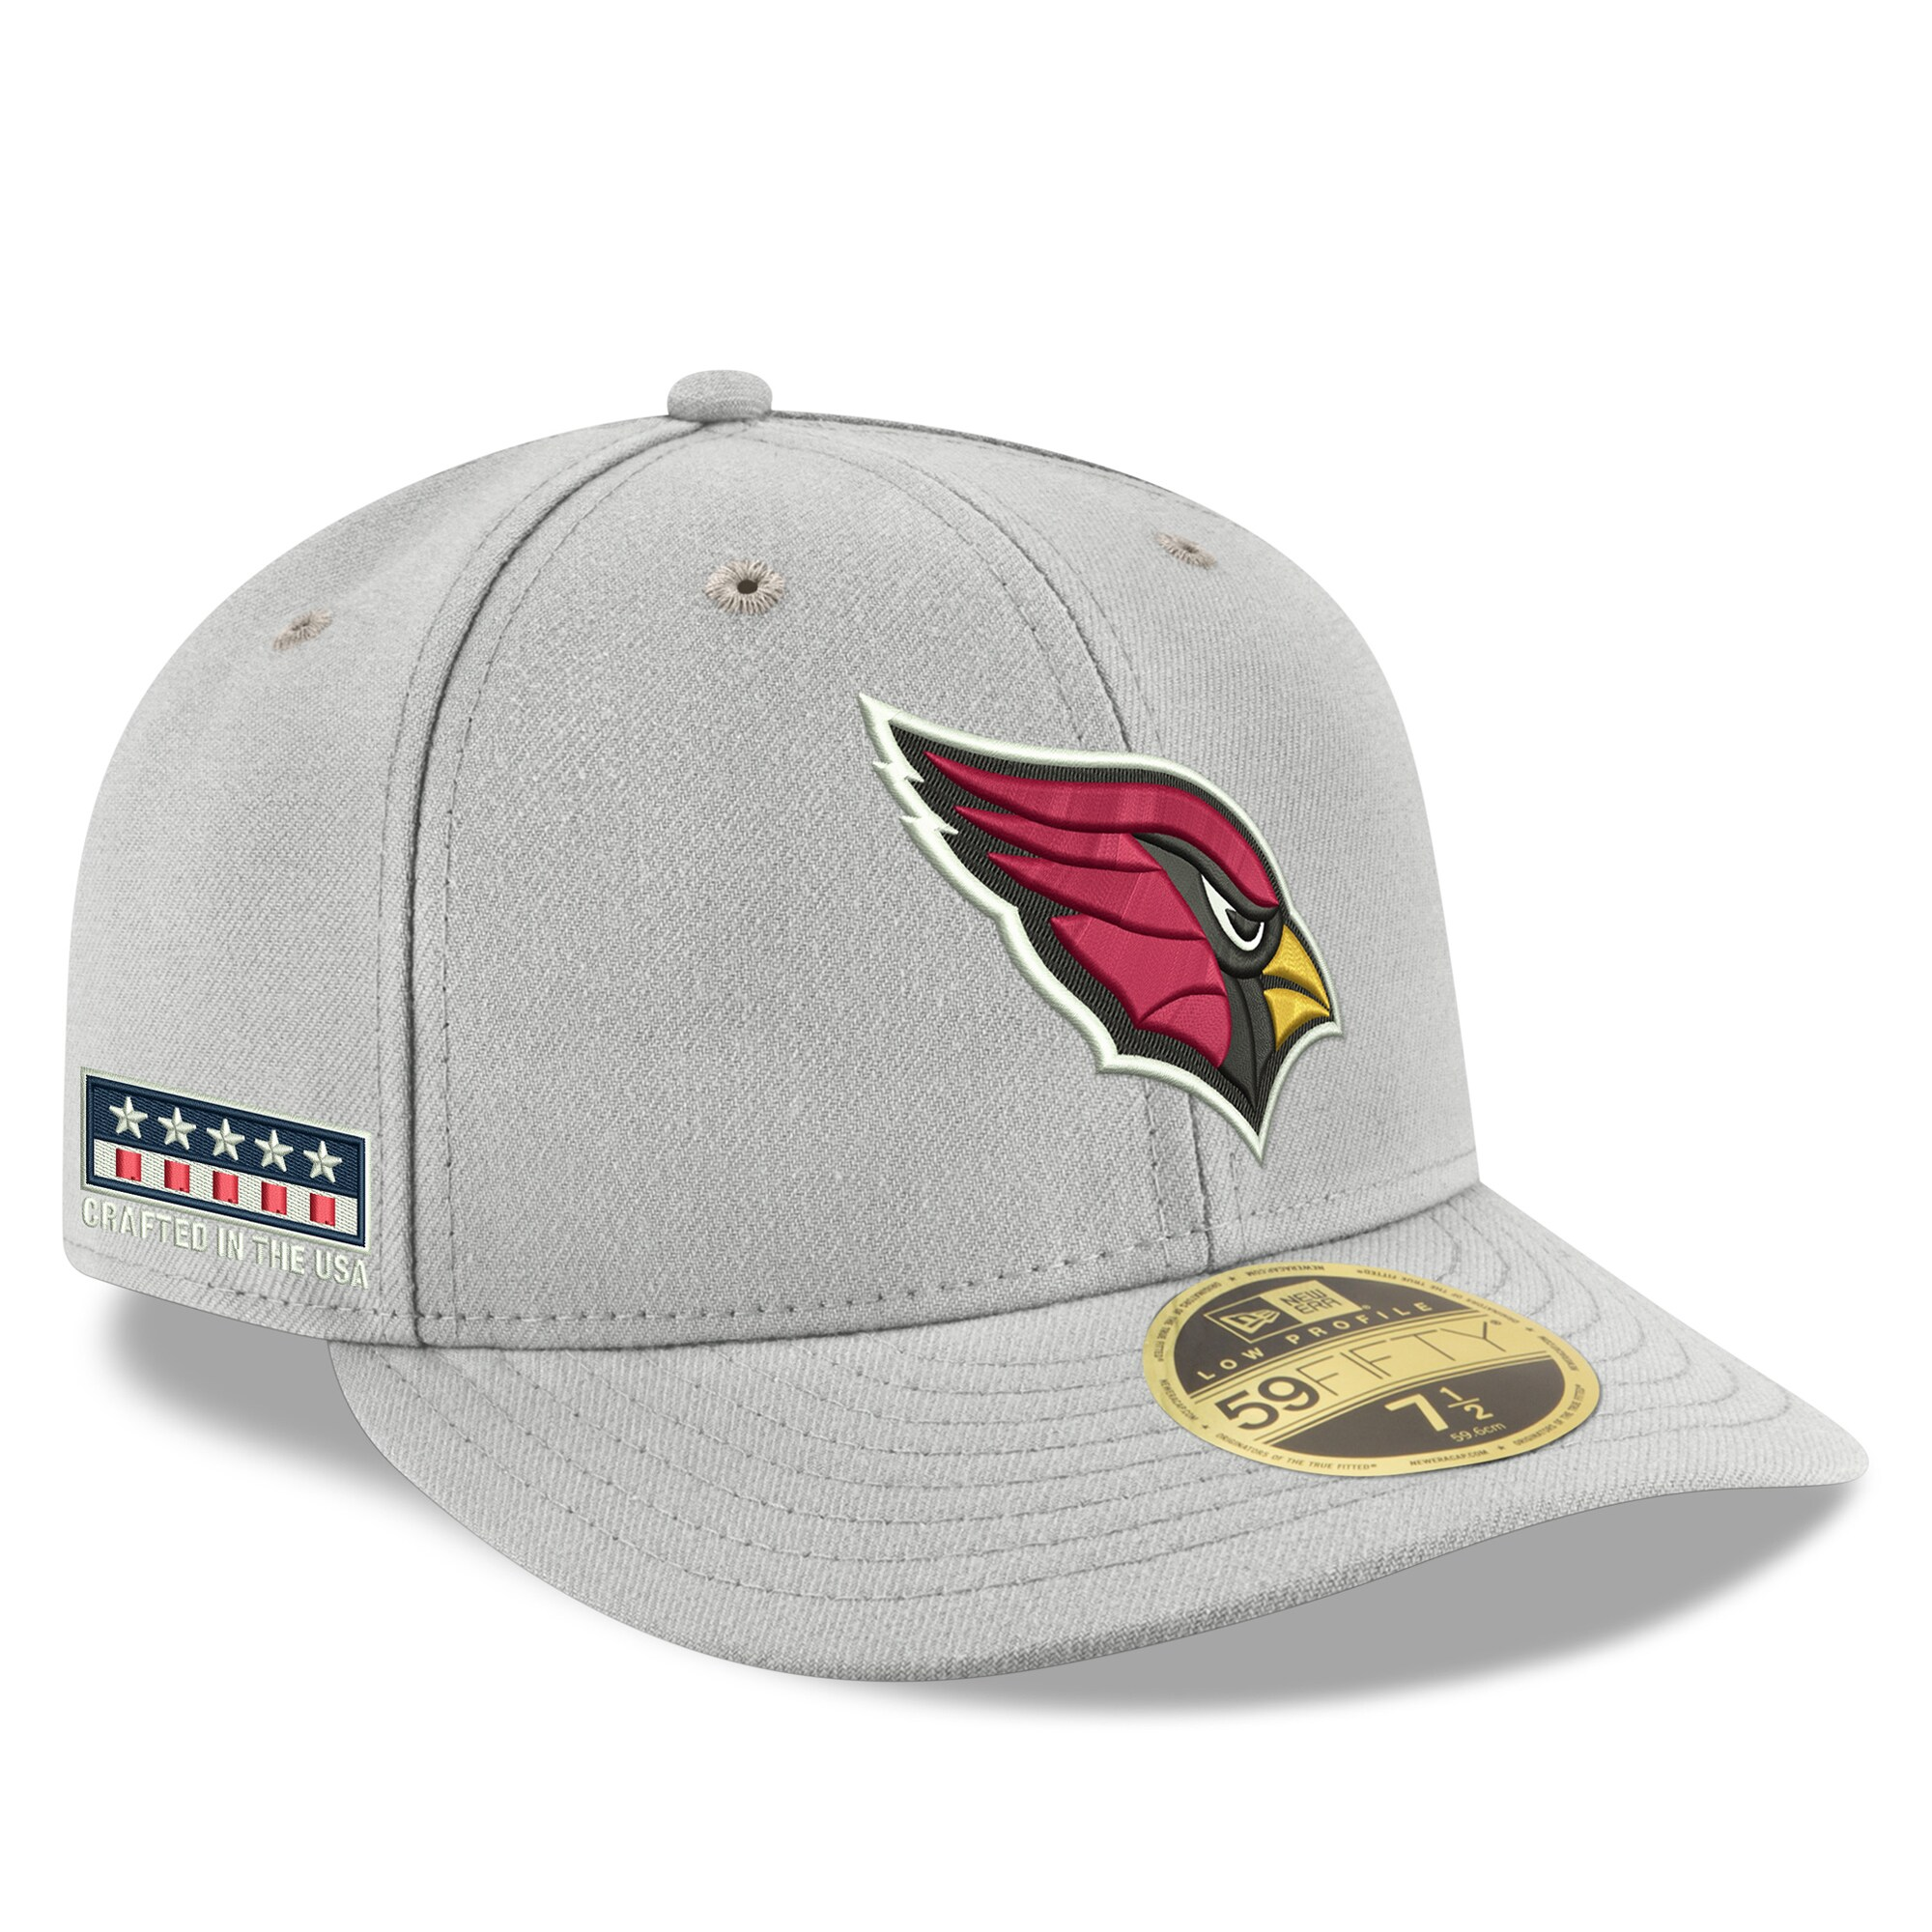 Arizona Cardinals New Era Crafted in the USA Low Profile 59FIFTY Fitted Hat - Gray